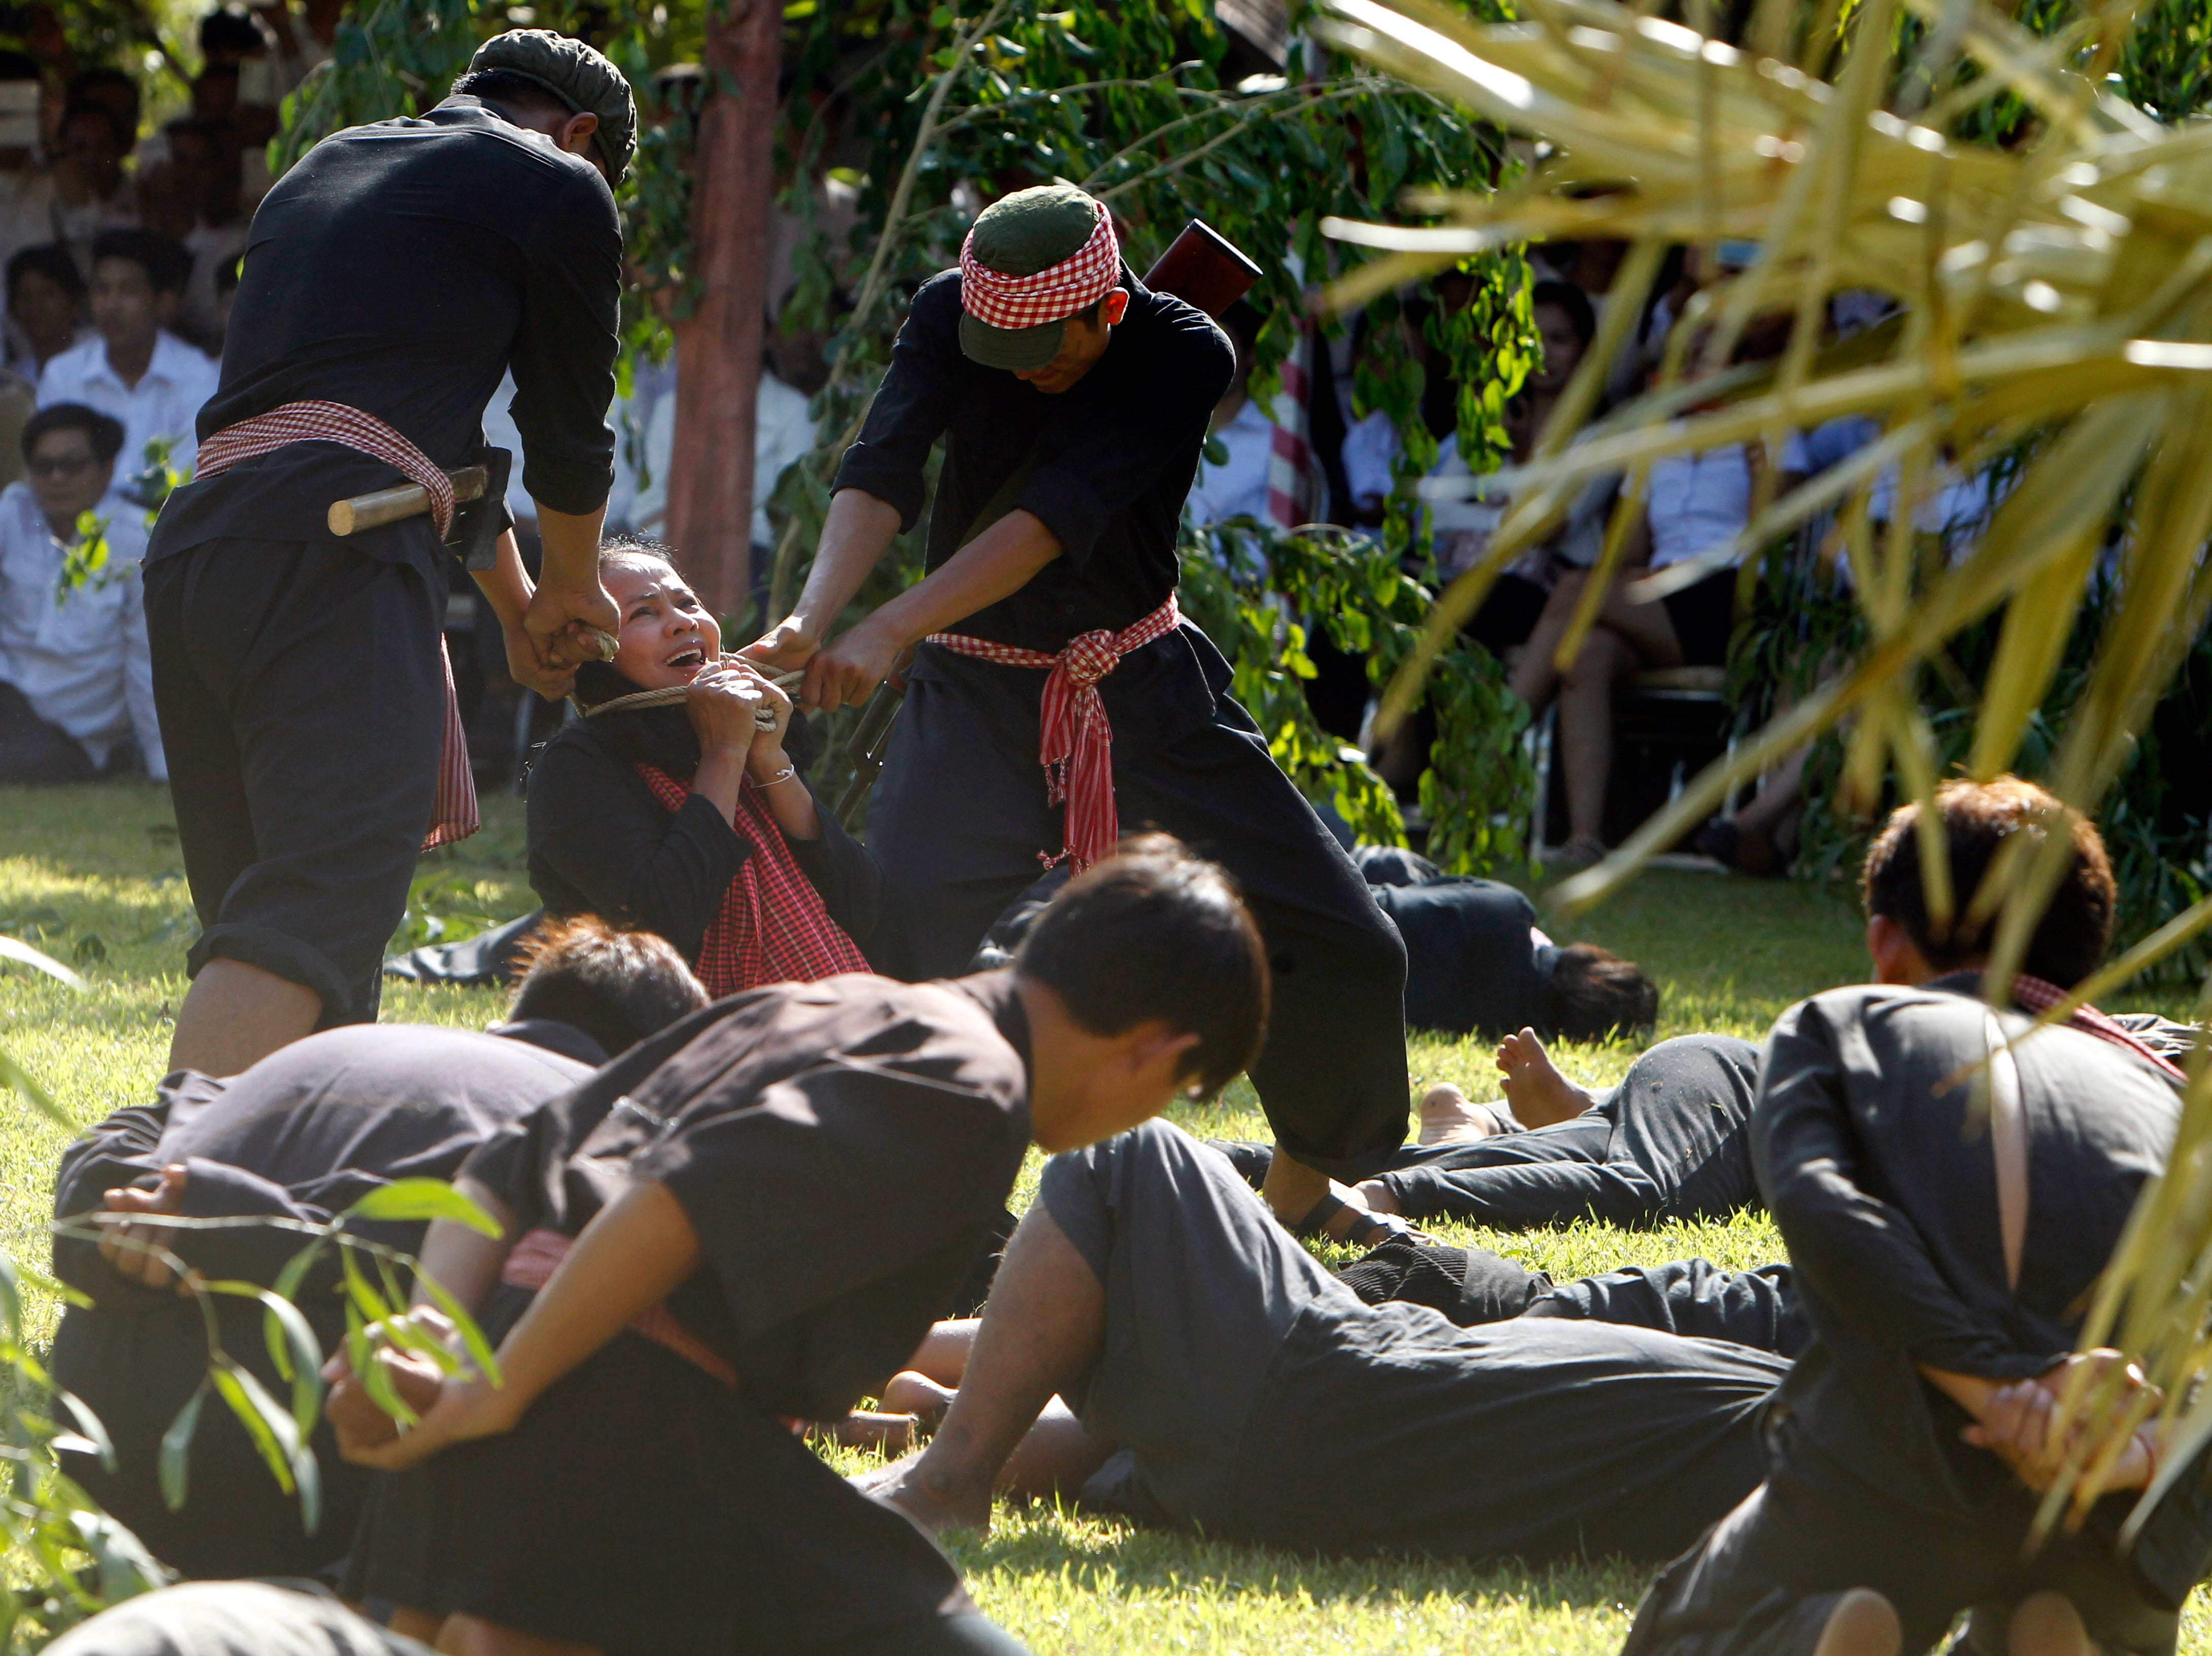 """Cambodian students from Royal University of Fine Arts re-enact torture and execution by the Khmer Rouge during their reign of terror in the 1970s in an event hosted by the ruling Cambodian People's Party to mark the annual Day of Anger at Choeung Ek, a former Khmer Rouge """"killing field,"""" outside Phnom Penh, Cambodia, Monday, May 20, 2019."""